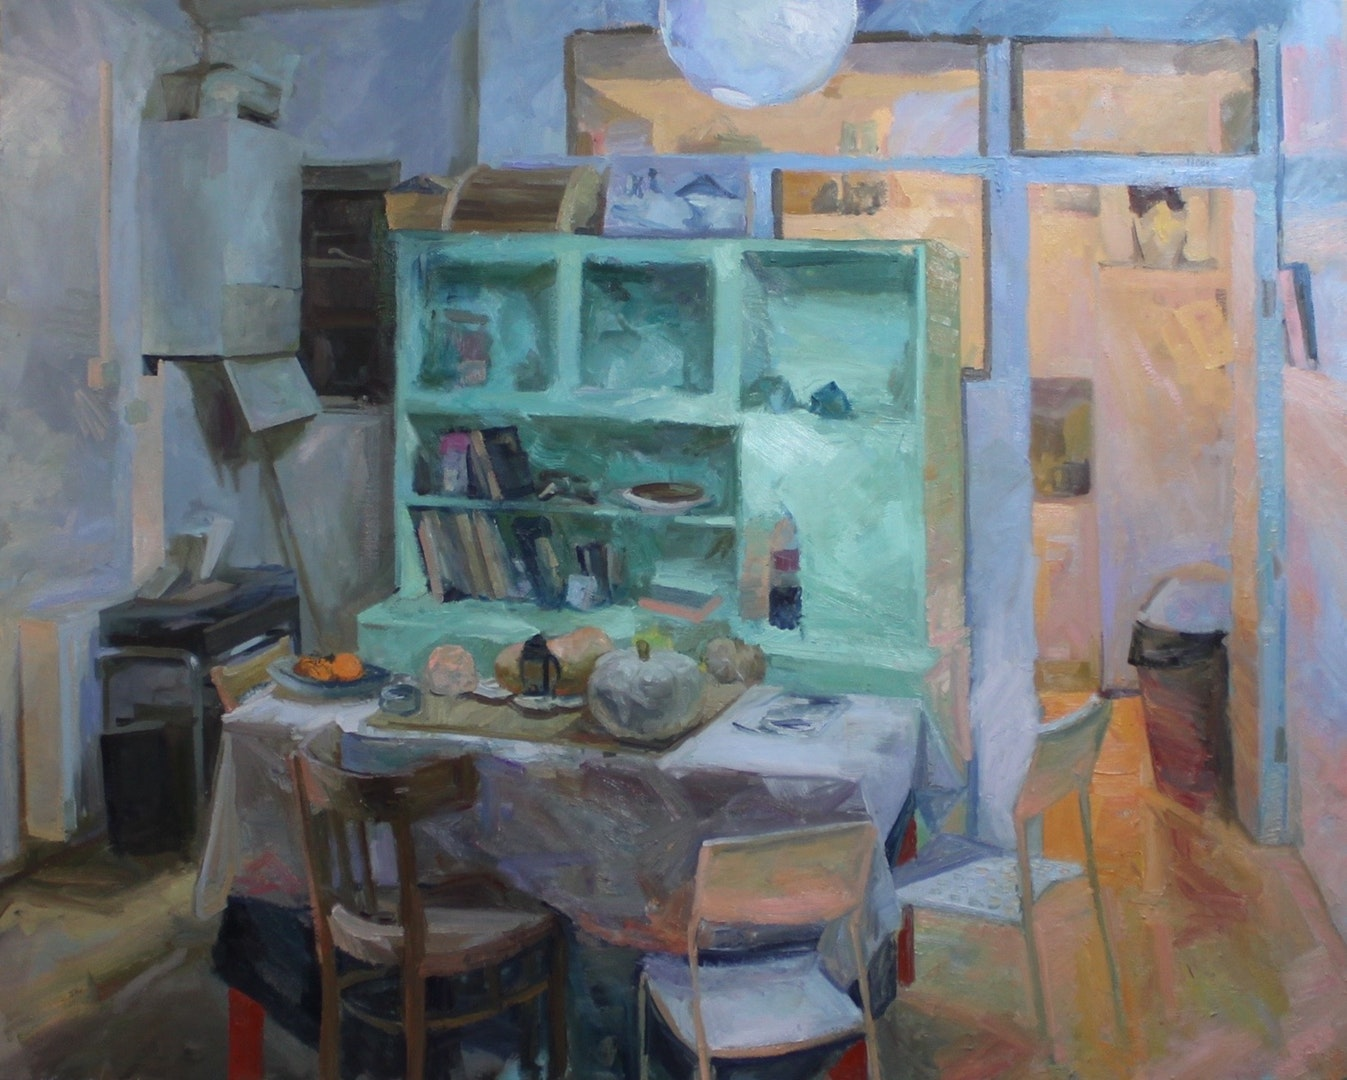 'Hackney Interior E9', Tim Patrick, Oil on linen, 160 x 200 cm